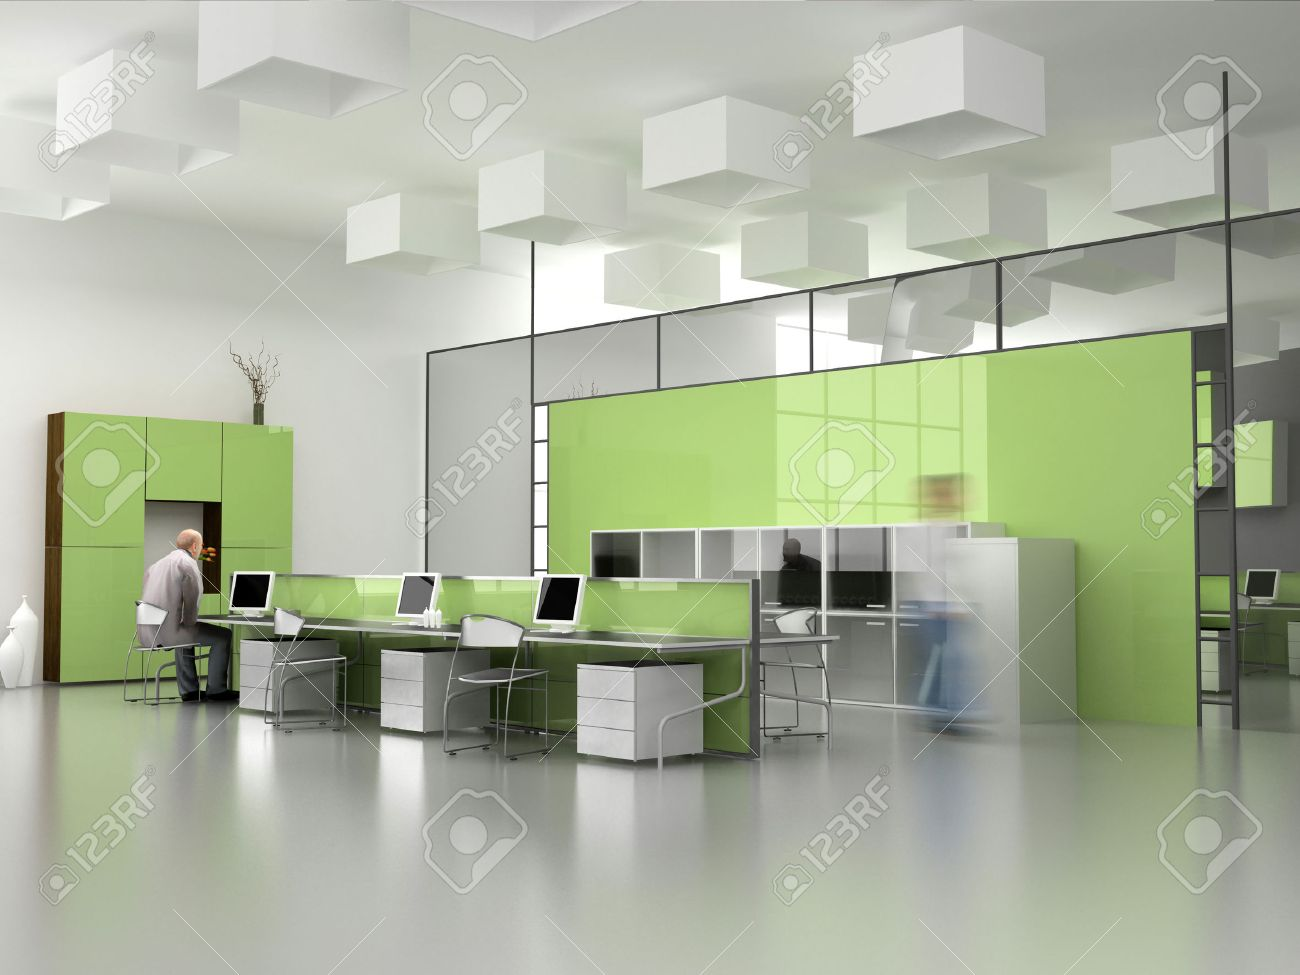 The Modern Office Interior Design (3d Render) Stock Photo   1412276